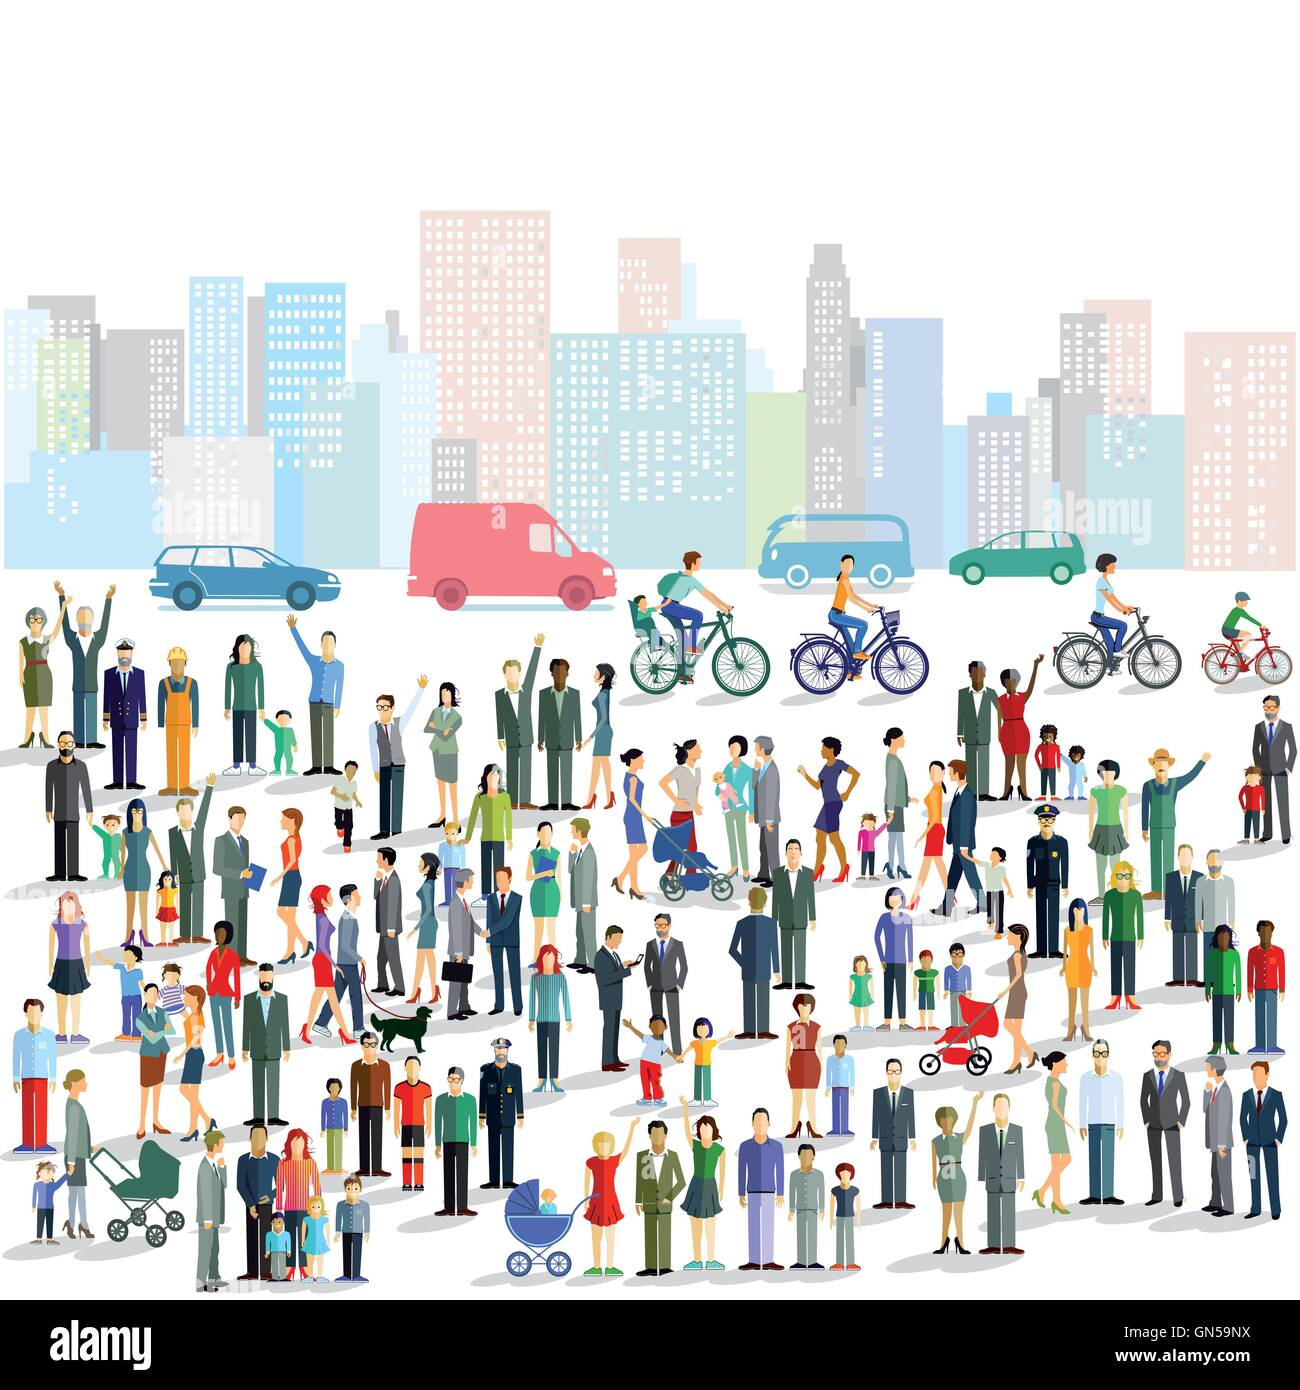 Groups of people in the city - Stock Vector